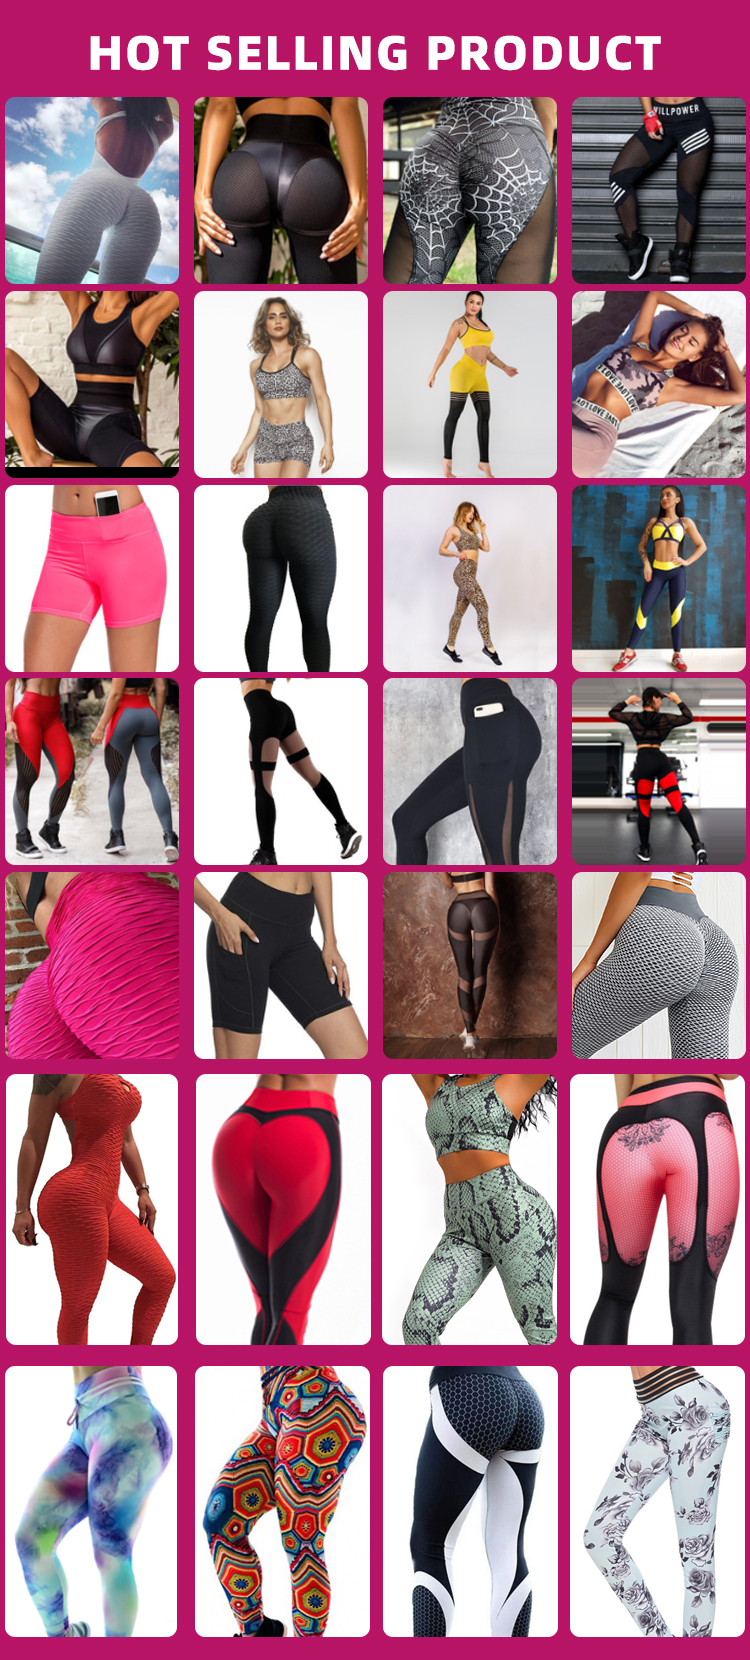 Uron 2019 New Hot Selling drop shopping wholesale Young Women Leggings Color Matching Sport Pants Dropship Yoga Pants